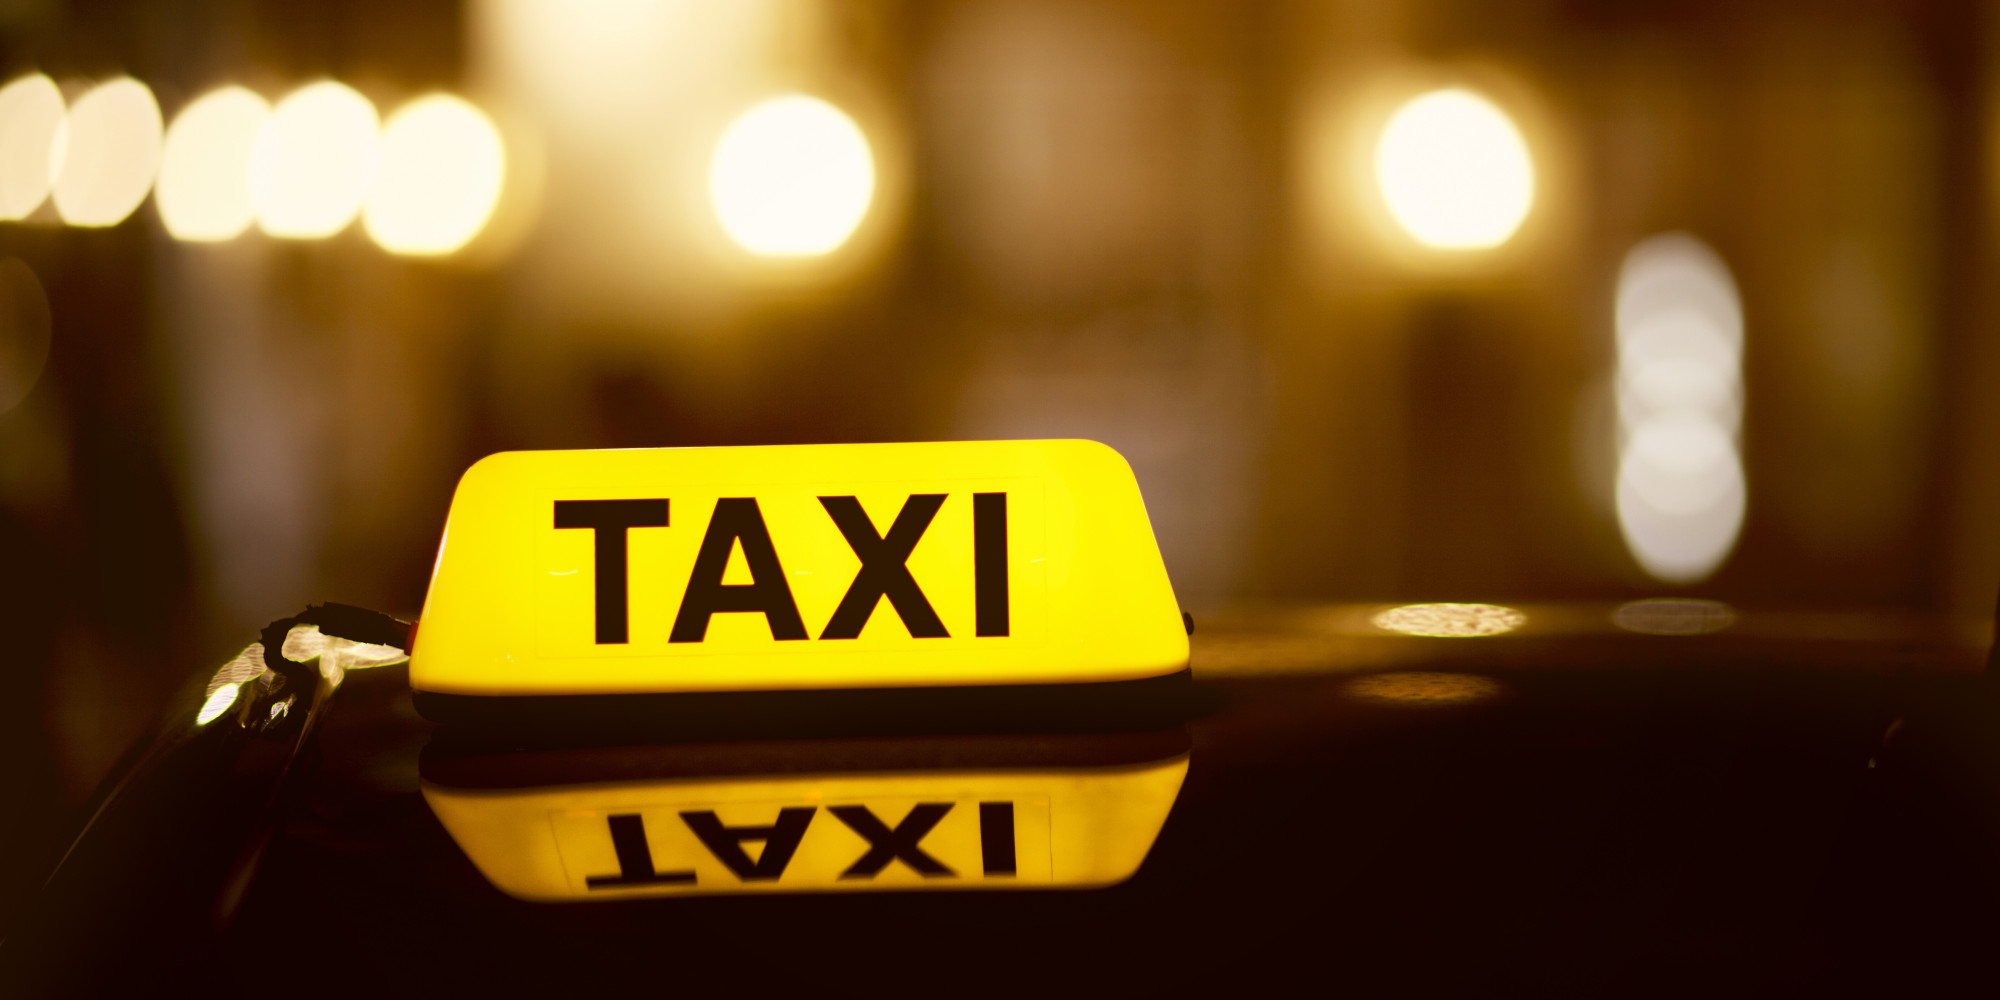 Cab Booking Web and Mobile Applications like Uber and Ola